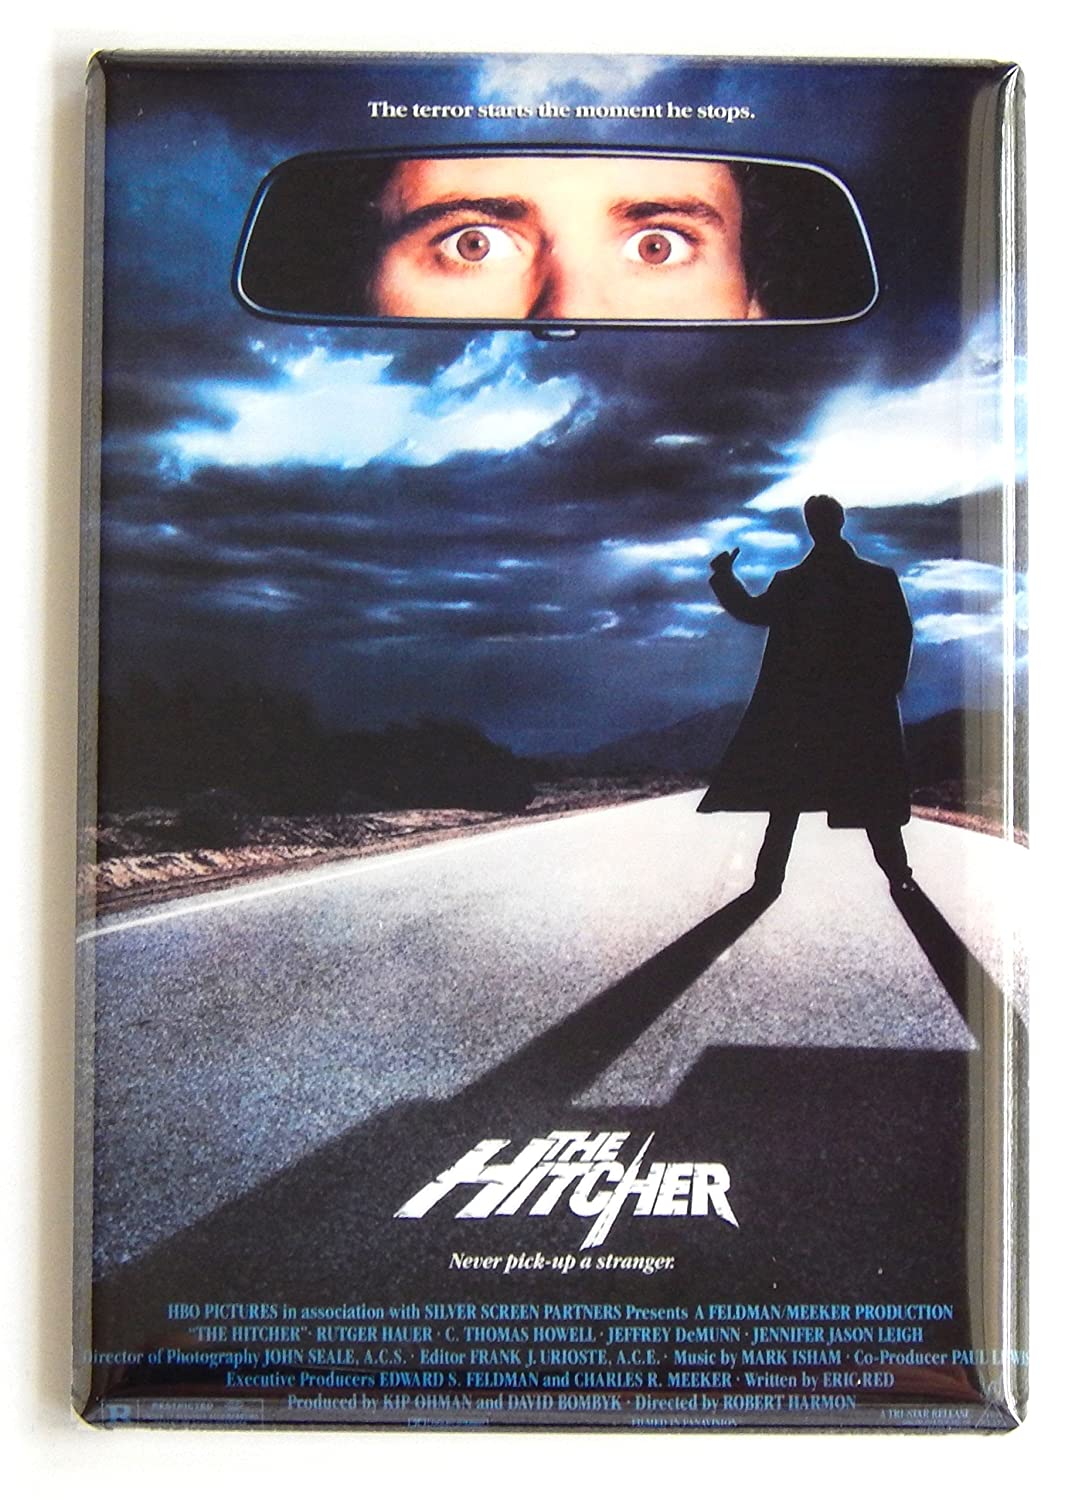 The Hitcher Movie Poster Fridge Magnet (2.5 x 3.5 inches)